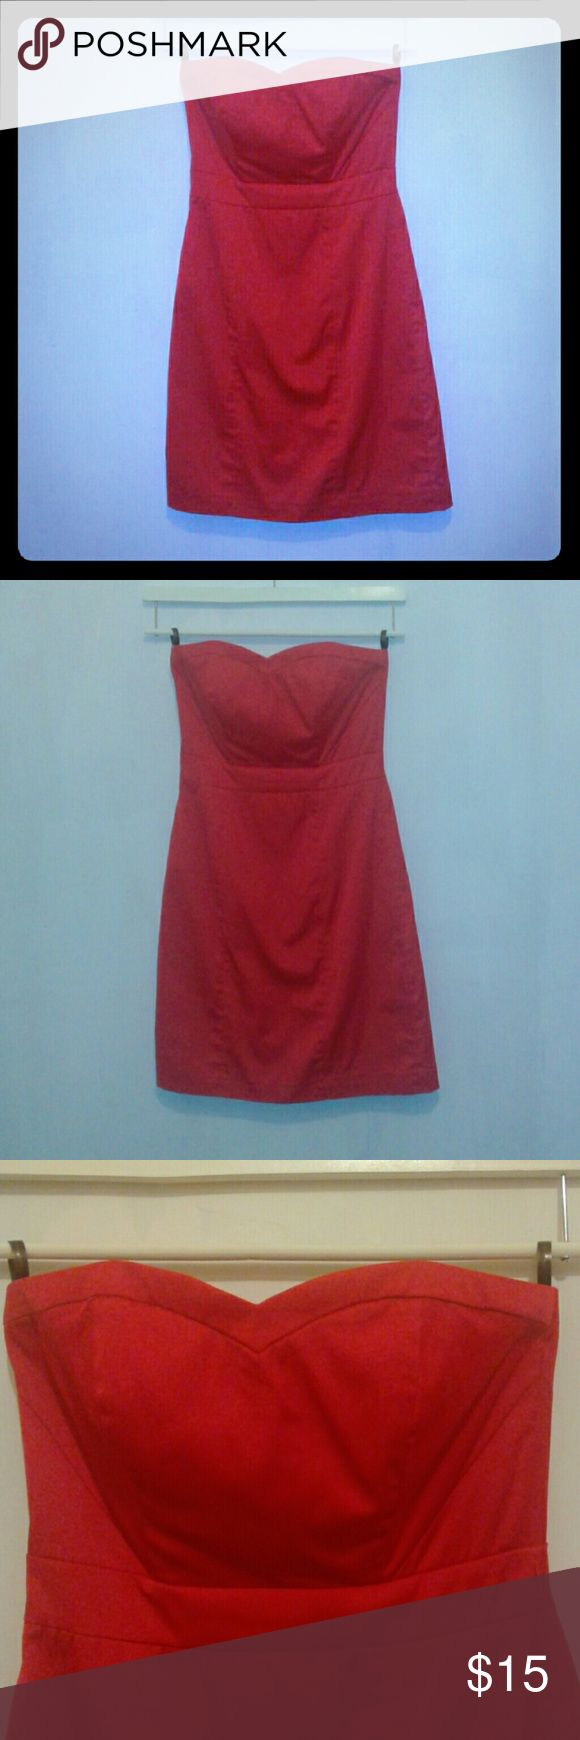 H&M red cocktail dress size 4 Red size 4 (US) H&M strapless cocktail dress.  The dress has a zipper enclosure in the back. The inside of the bodice has grippers sewn in to avoid sliding and a plastic insert for definition in the front and back. The lining is 100% polyester,  the outer body is 61% polyester,  36% cotton, and 3% spandex. The back of the dress also has a 4 inch slit on the bottom center. The dress originally came with a belt that is not included, however discreet belt loops are…